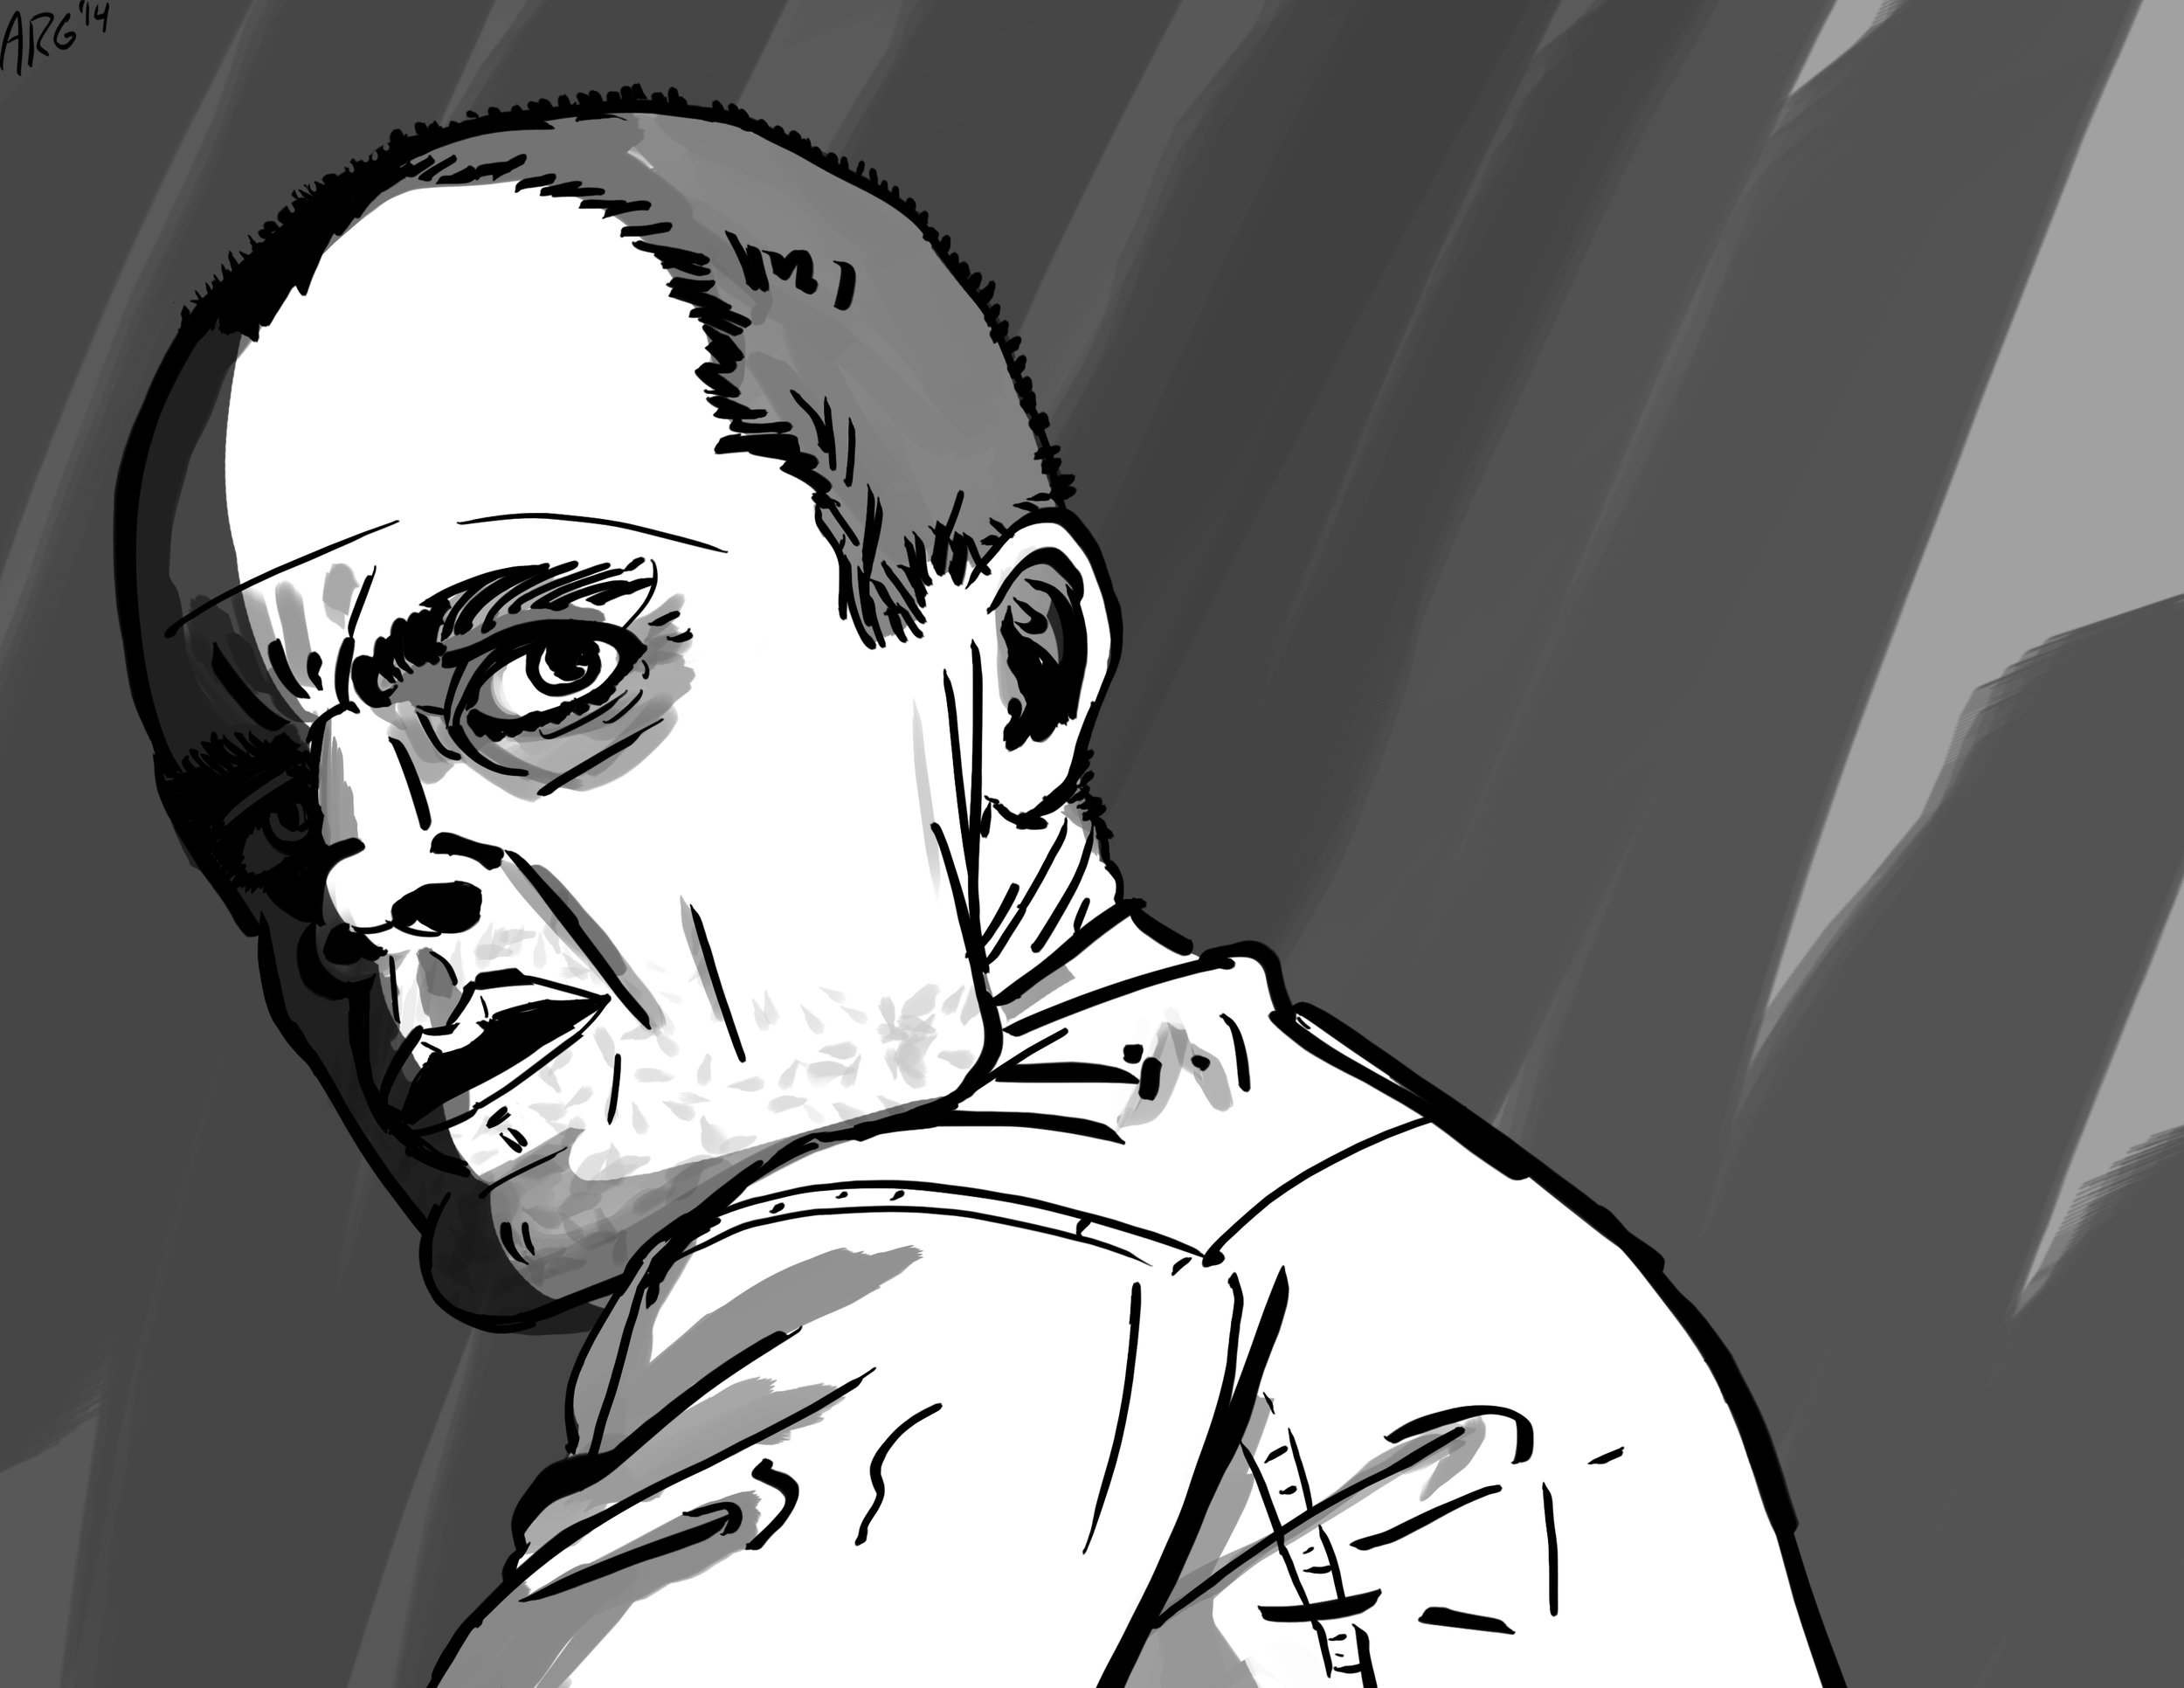 Michael Kelly - Doug Stamper - House of Cards